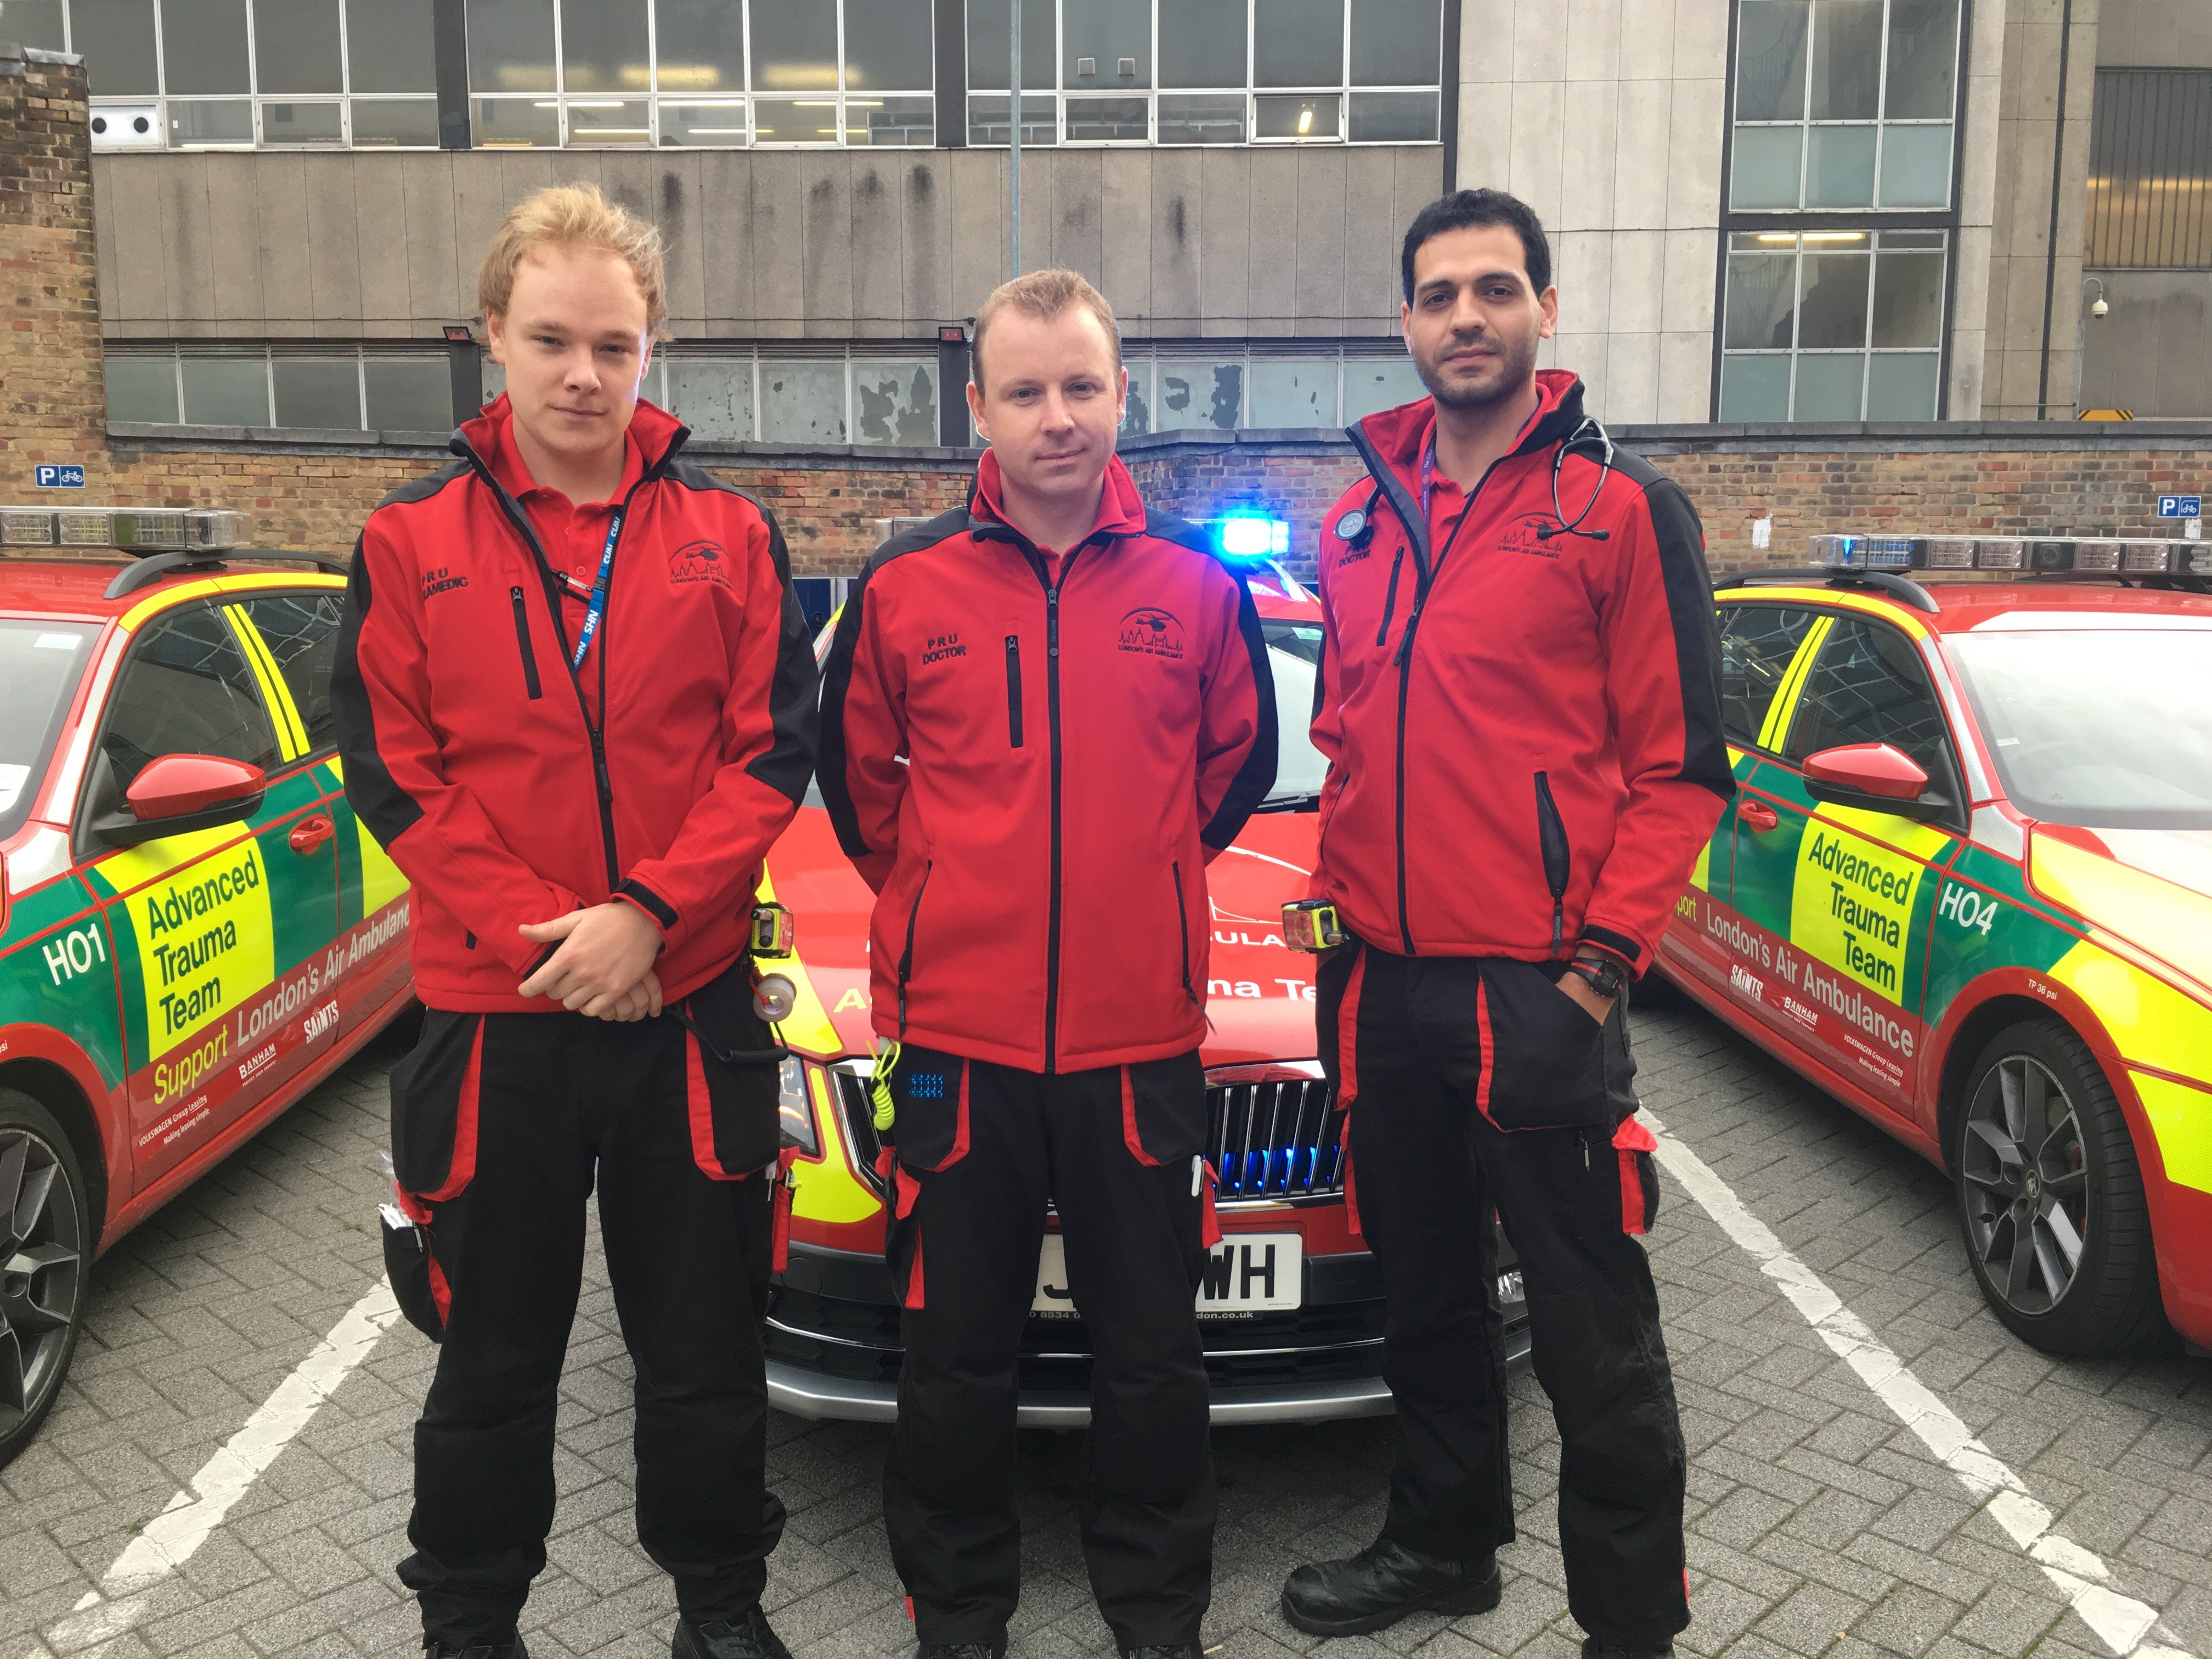 Crew from the Physician Response Unit in front of car